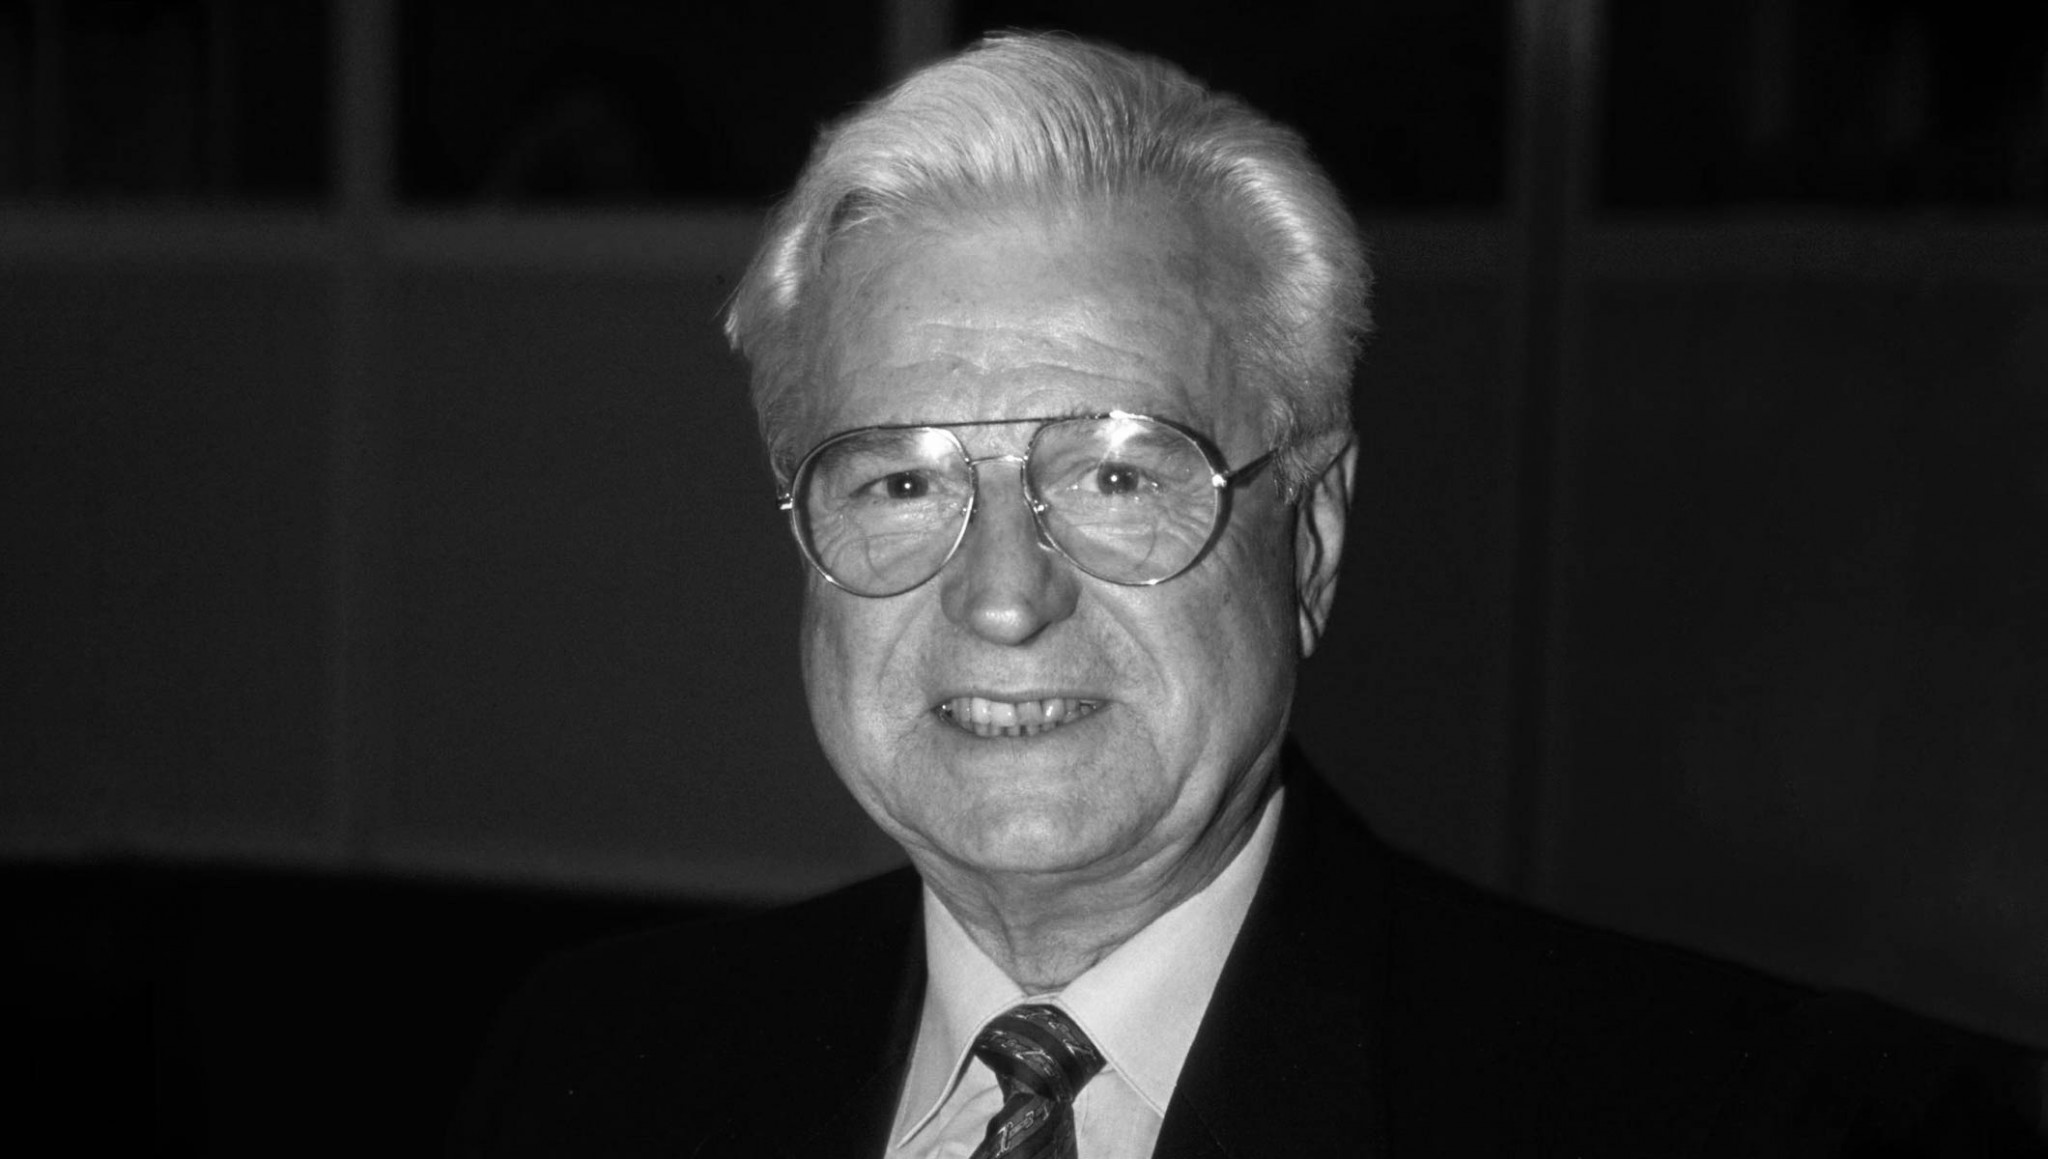 IOC honorary member Günther Heinze died aged 97 ©IOC